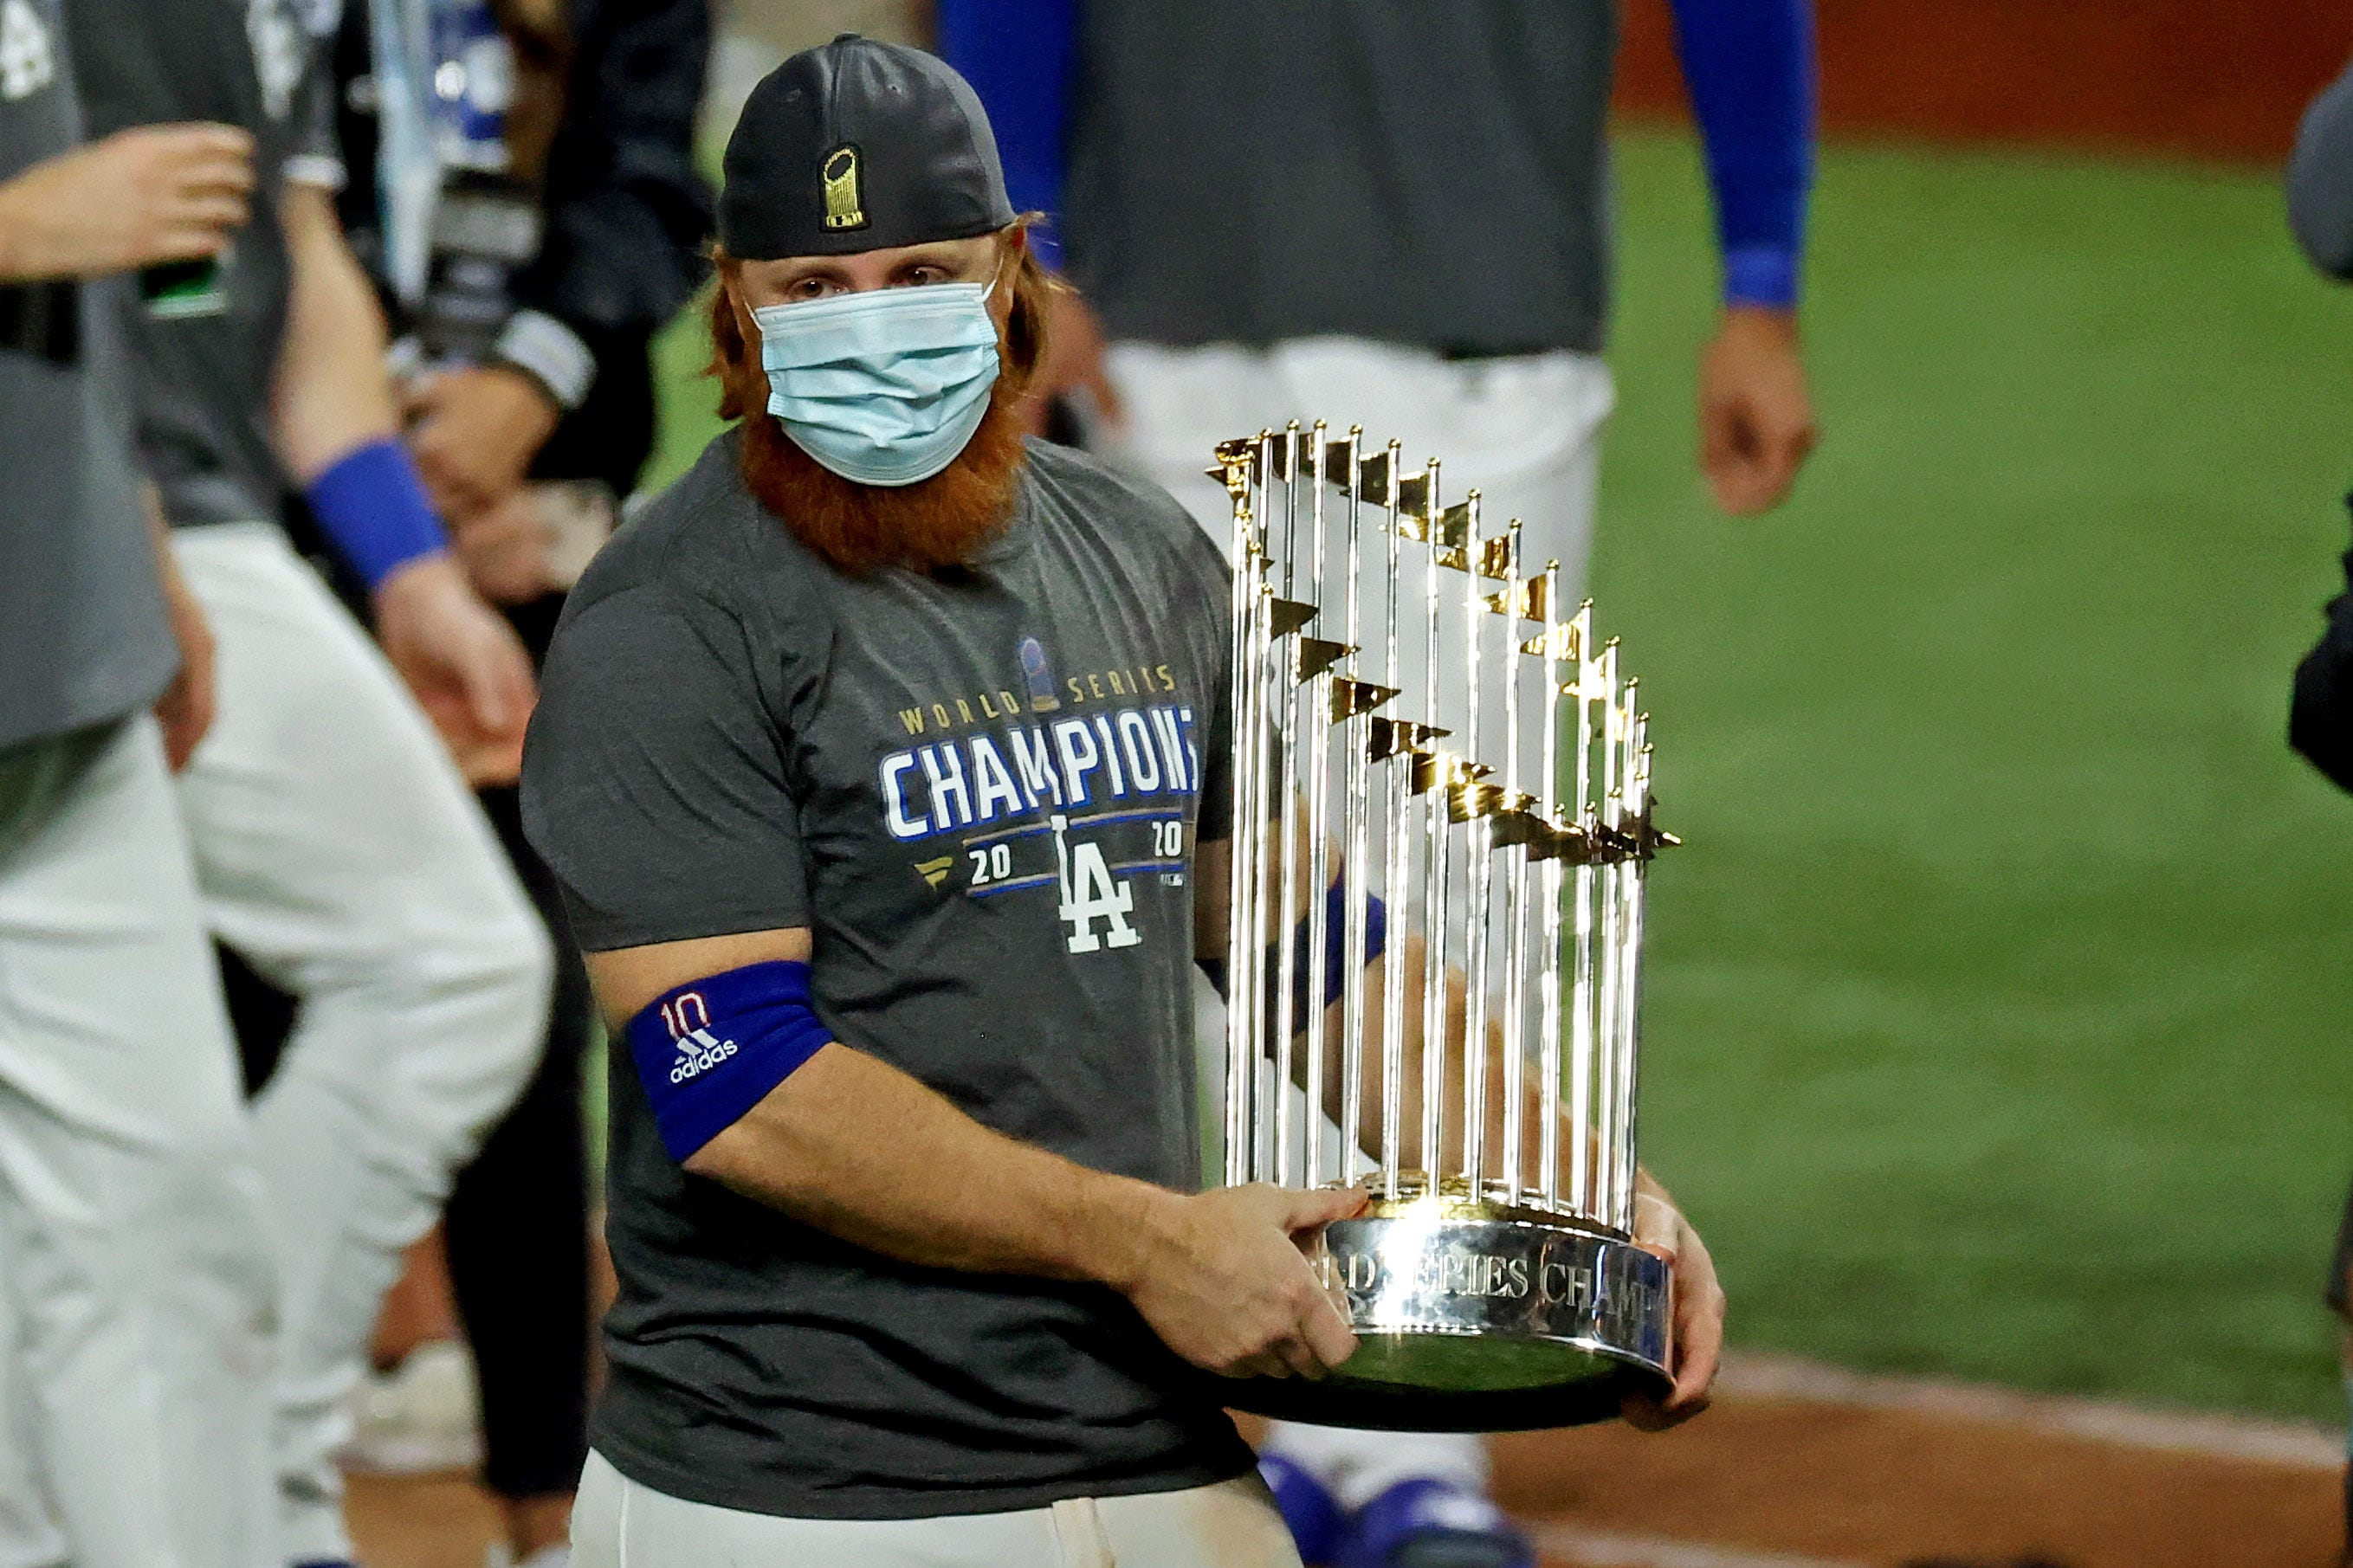 Opinion: MLB's season of sacrifice amid pandemic ends with galling breach of protocol by Justin Turner